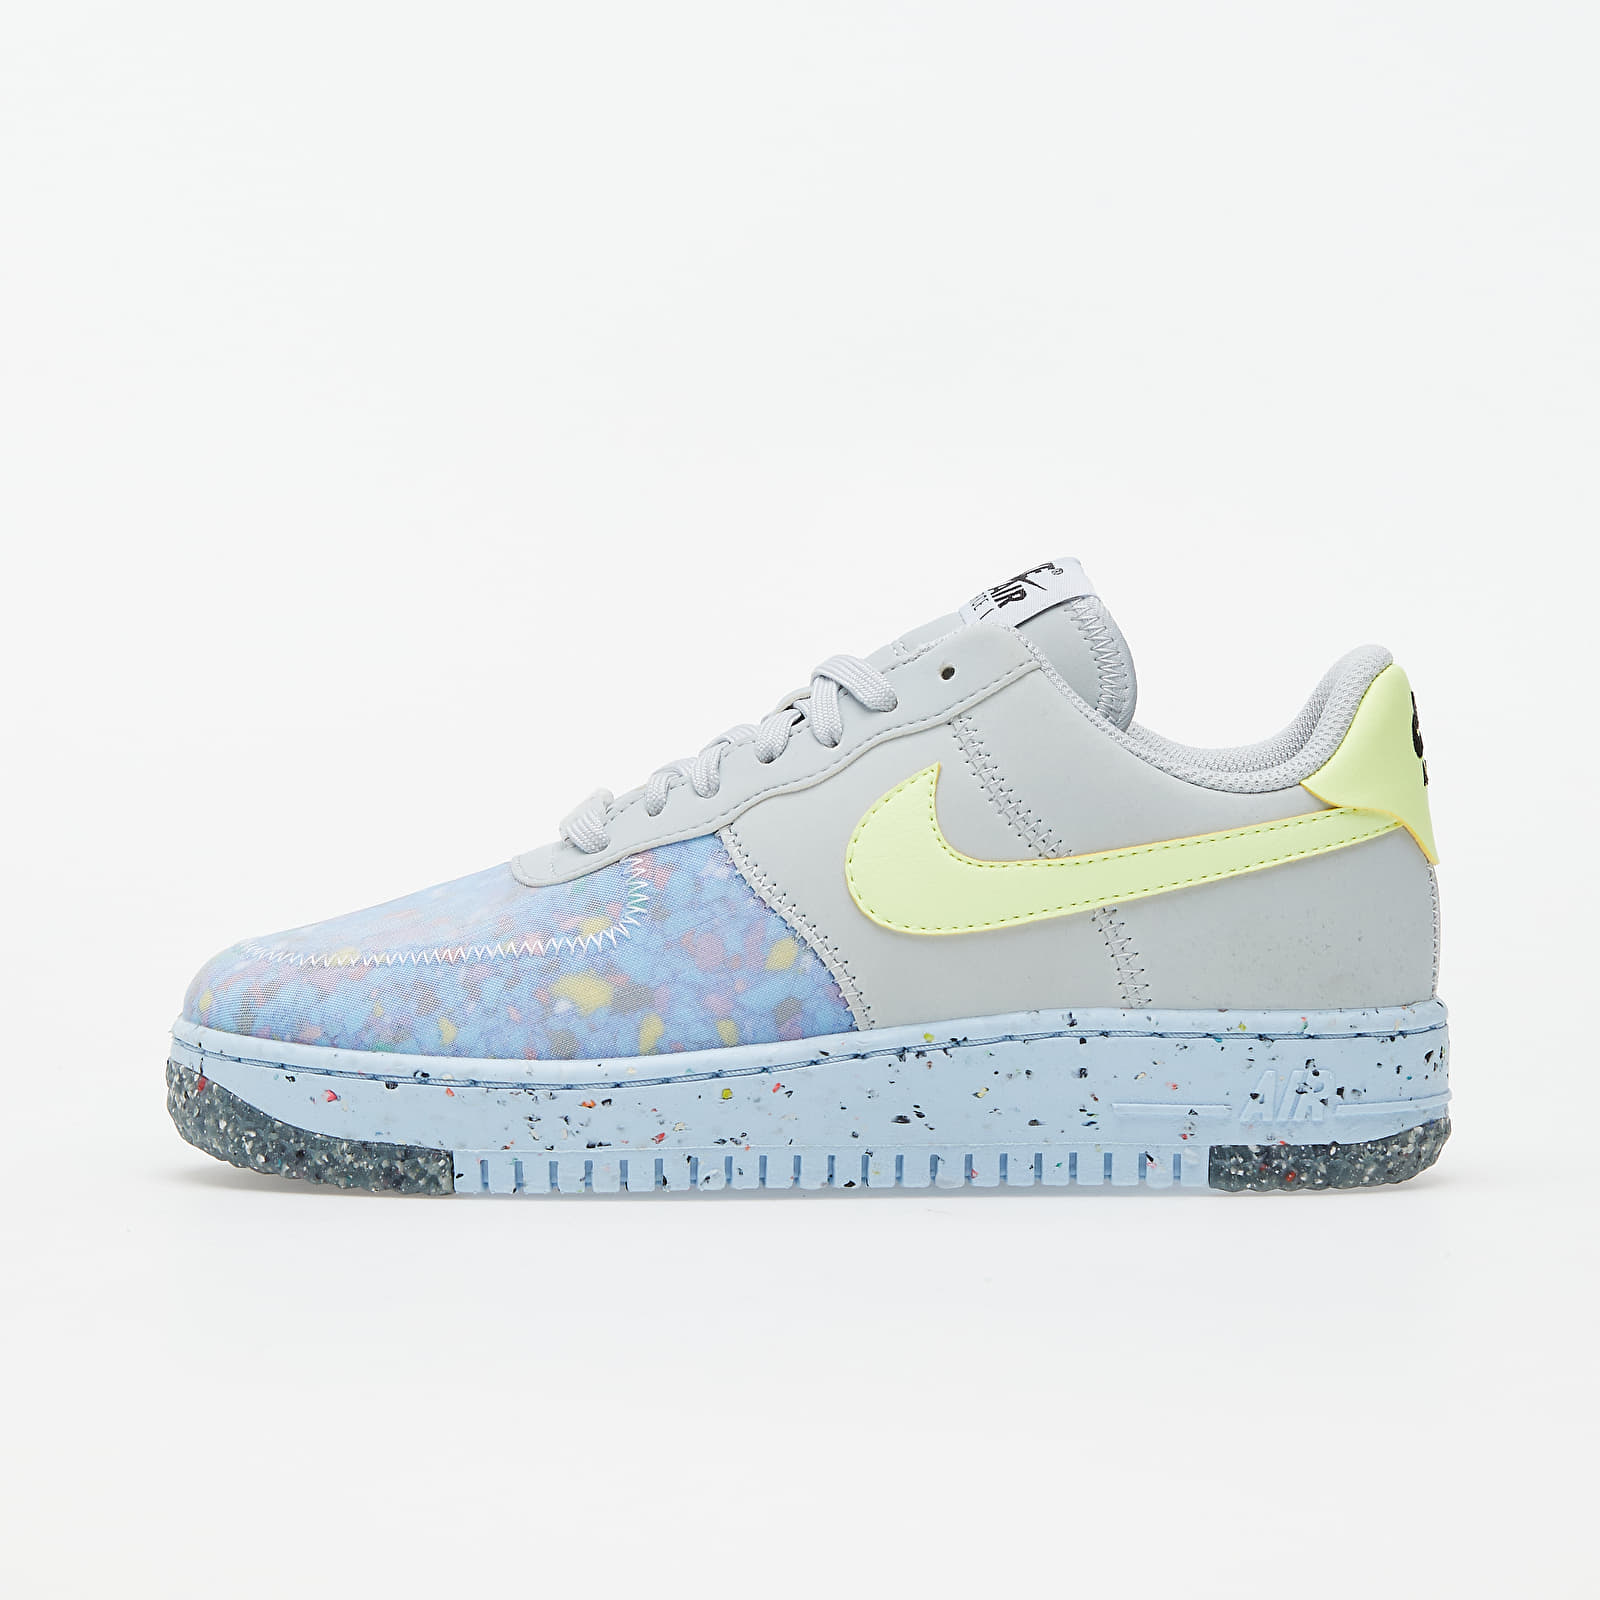 Ženske tenisice Nike W Air Force 1 Crater Pure Platinum/ Barely Volt-Summit White